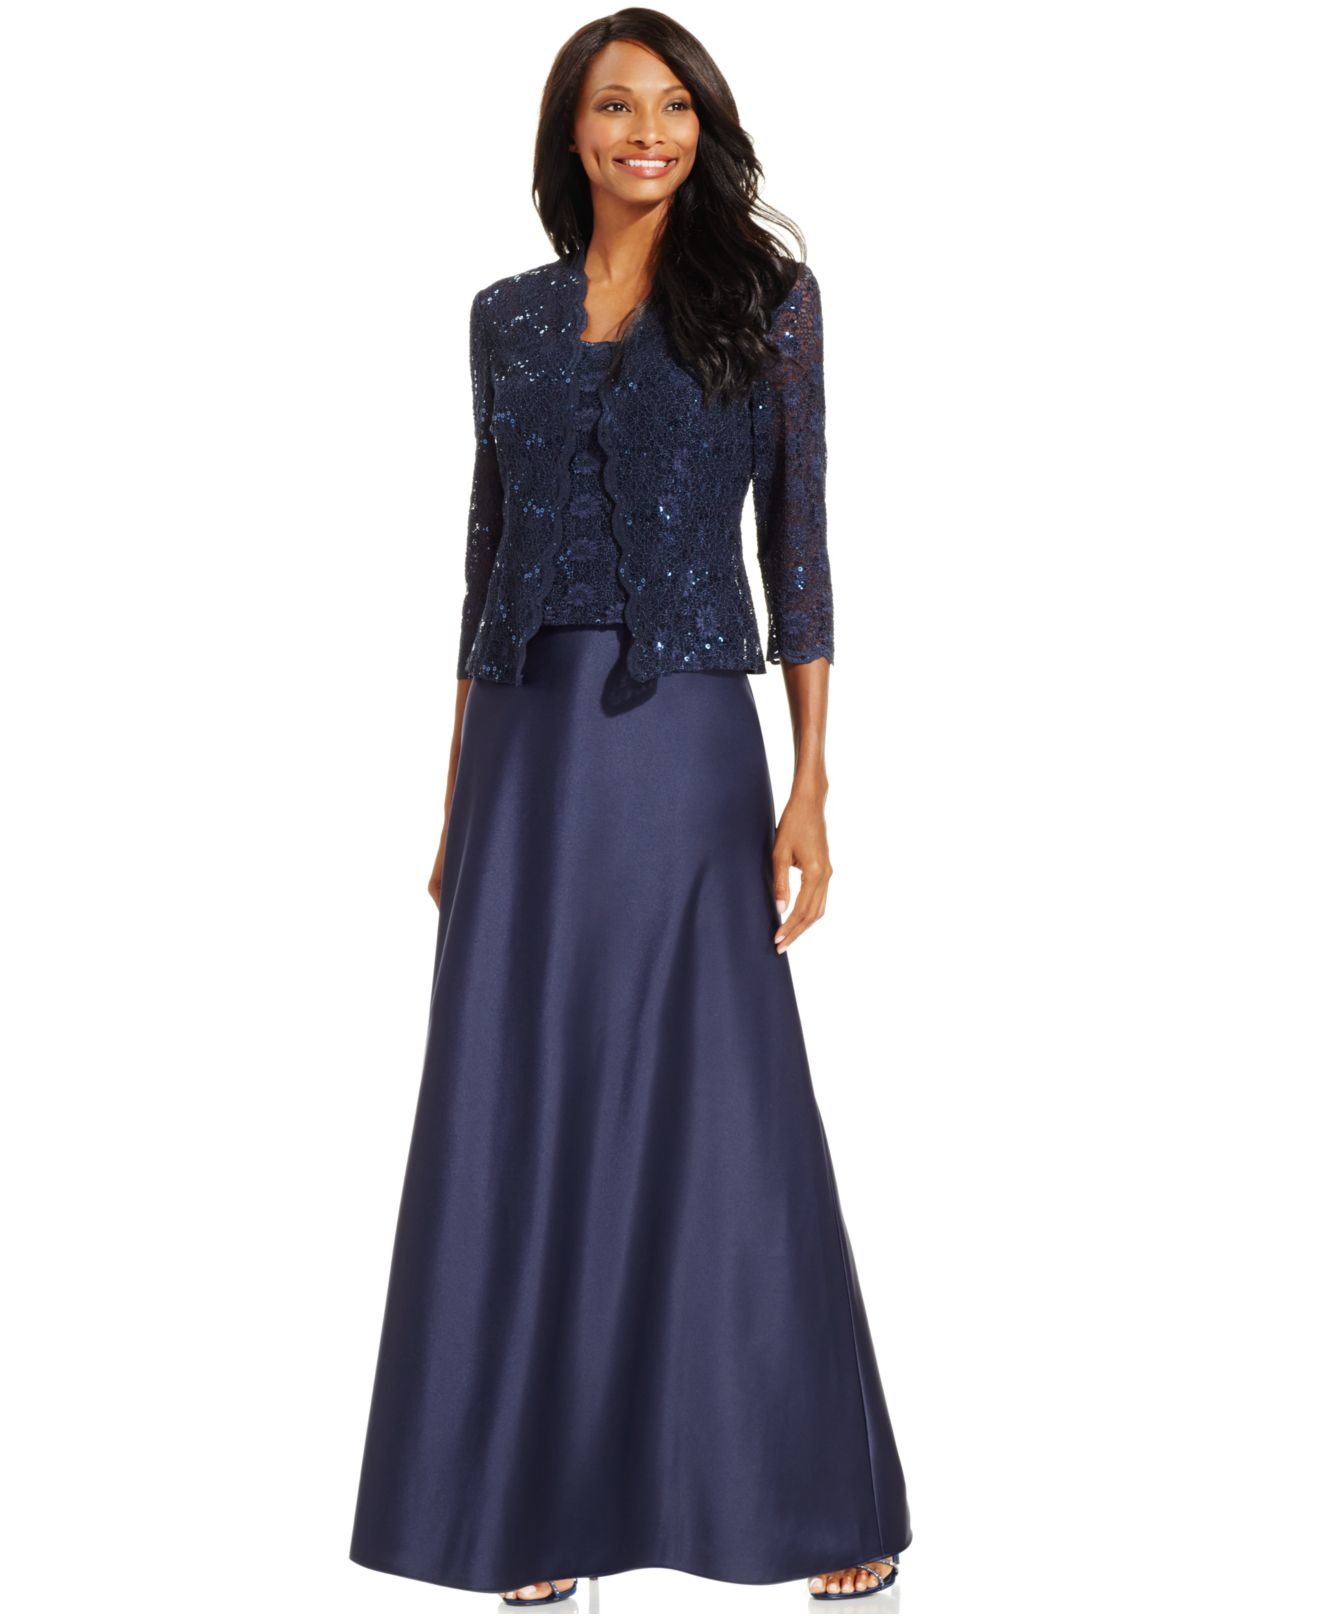 alex evenings midnight sequin lace satin gown and jacket blue product 0 604946148 normal